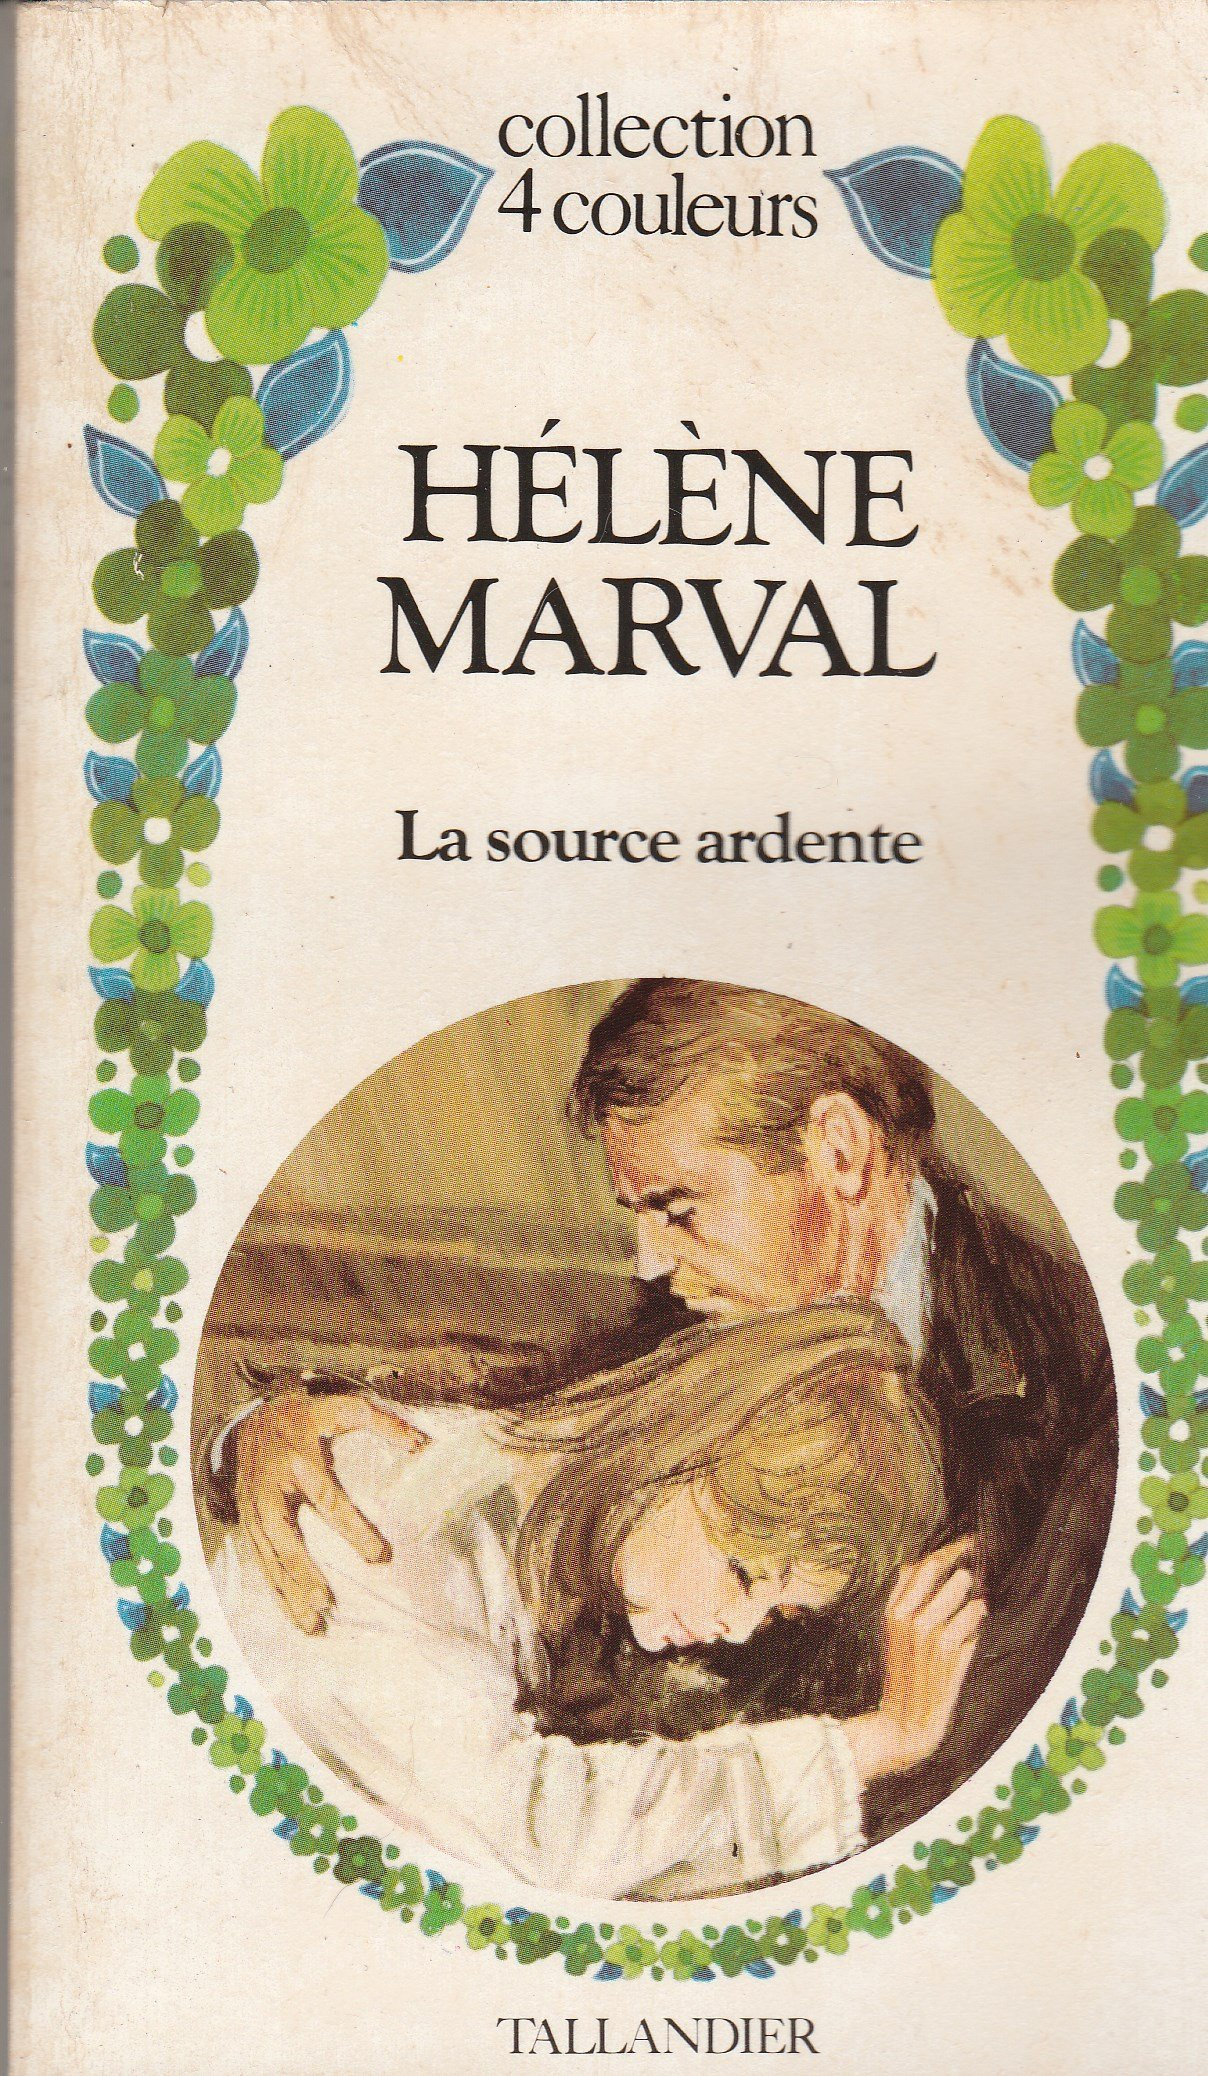 La source ardente - Hélène Marval